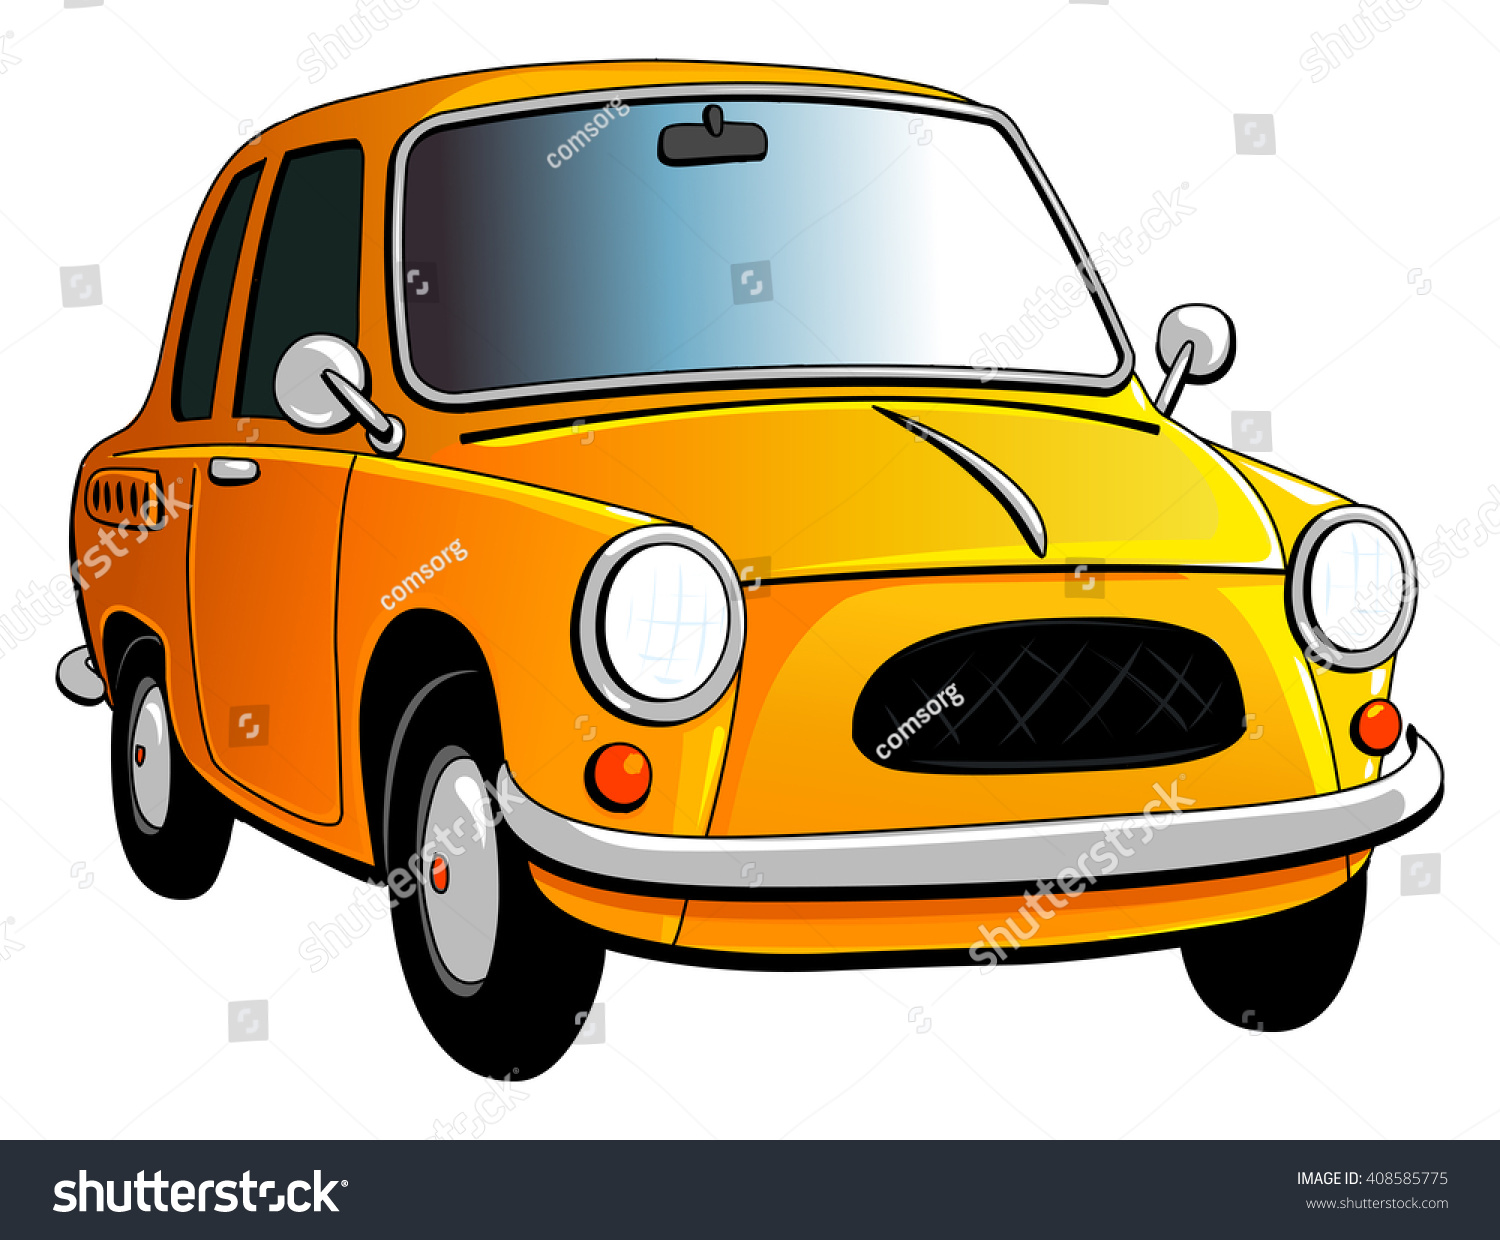 Caricature Old Small Yellow Car Stock Vector 408585775 - Shutterstock